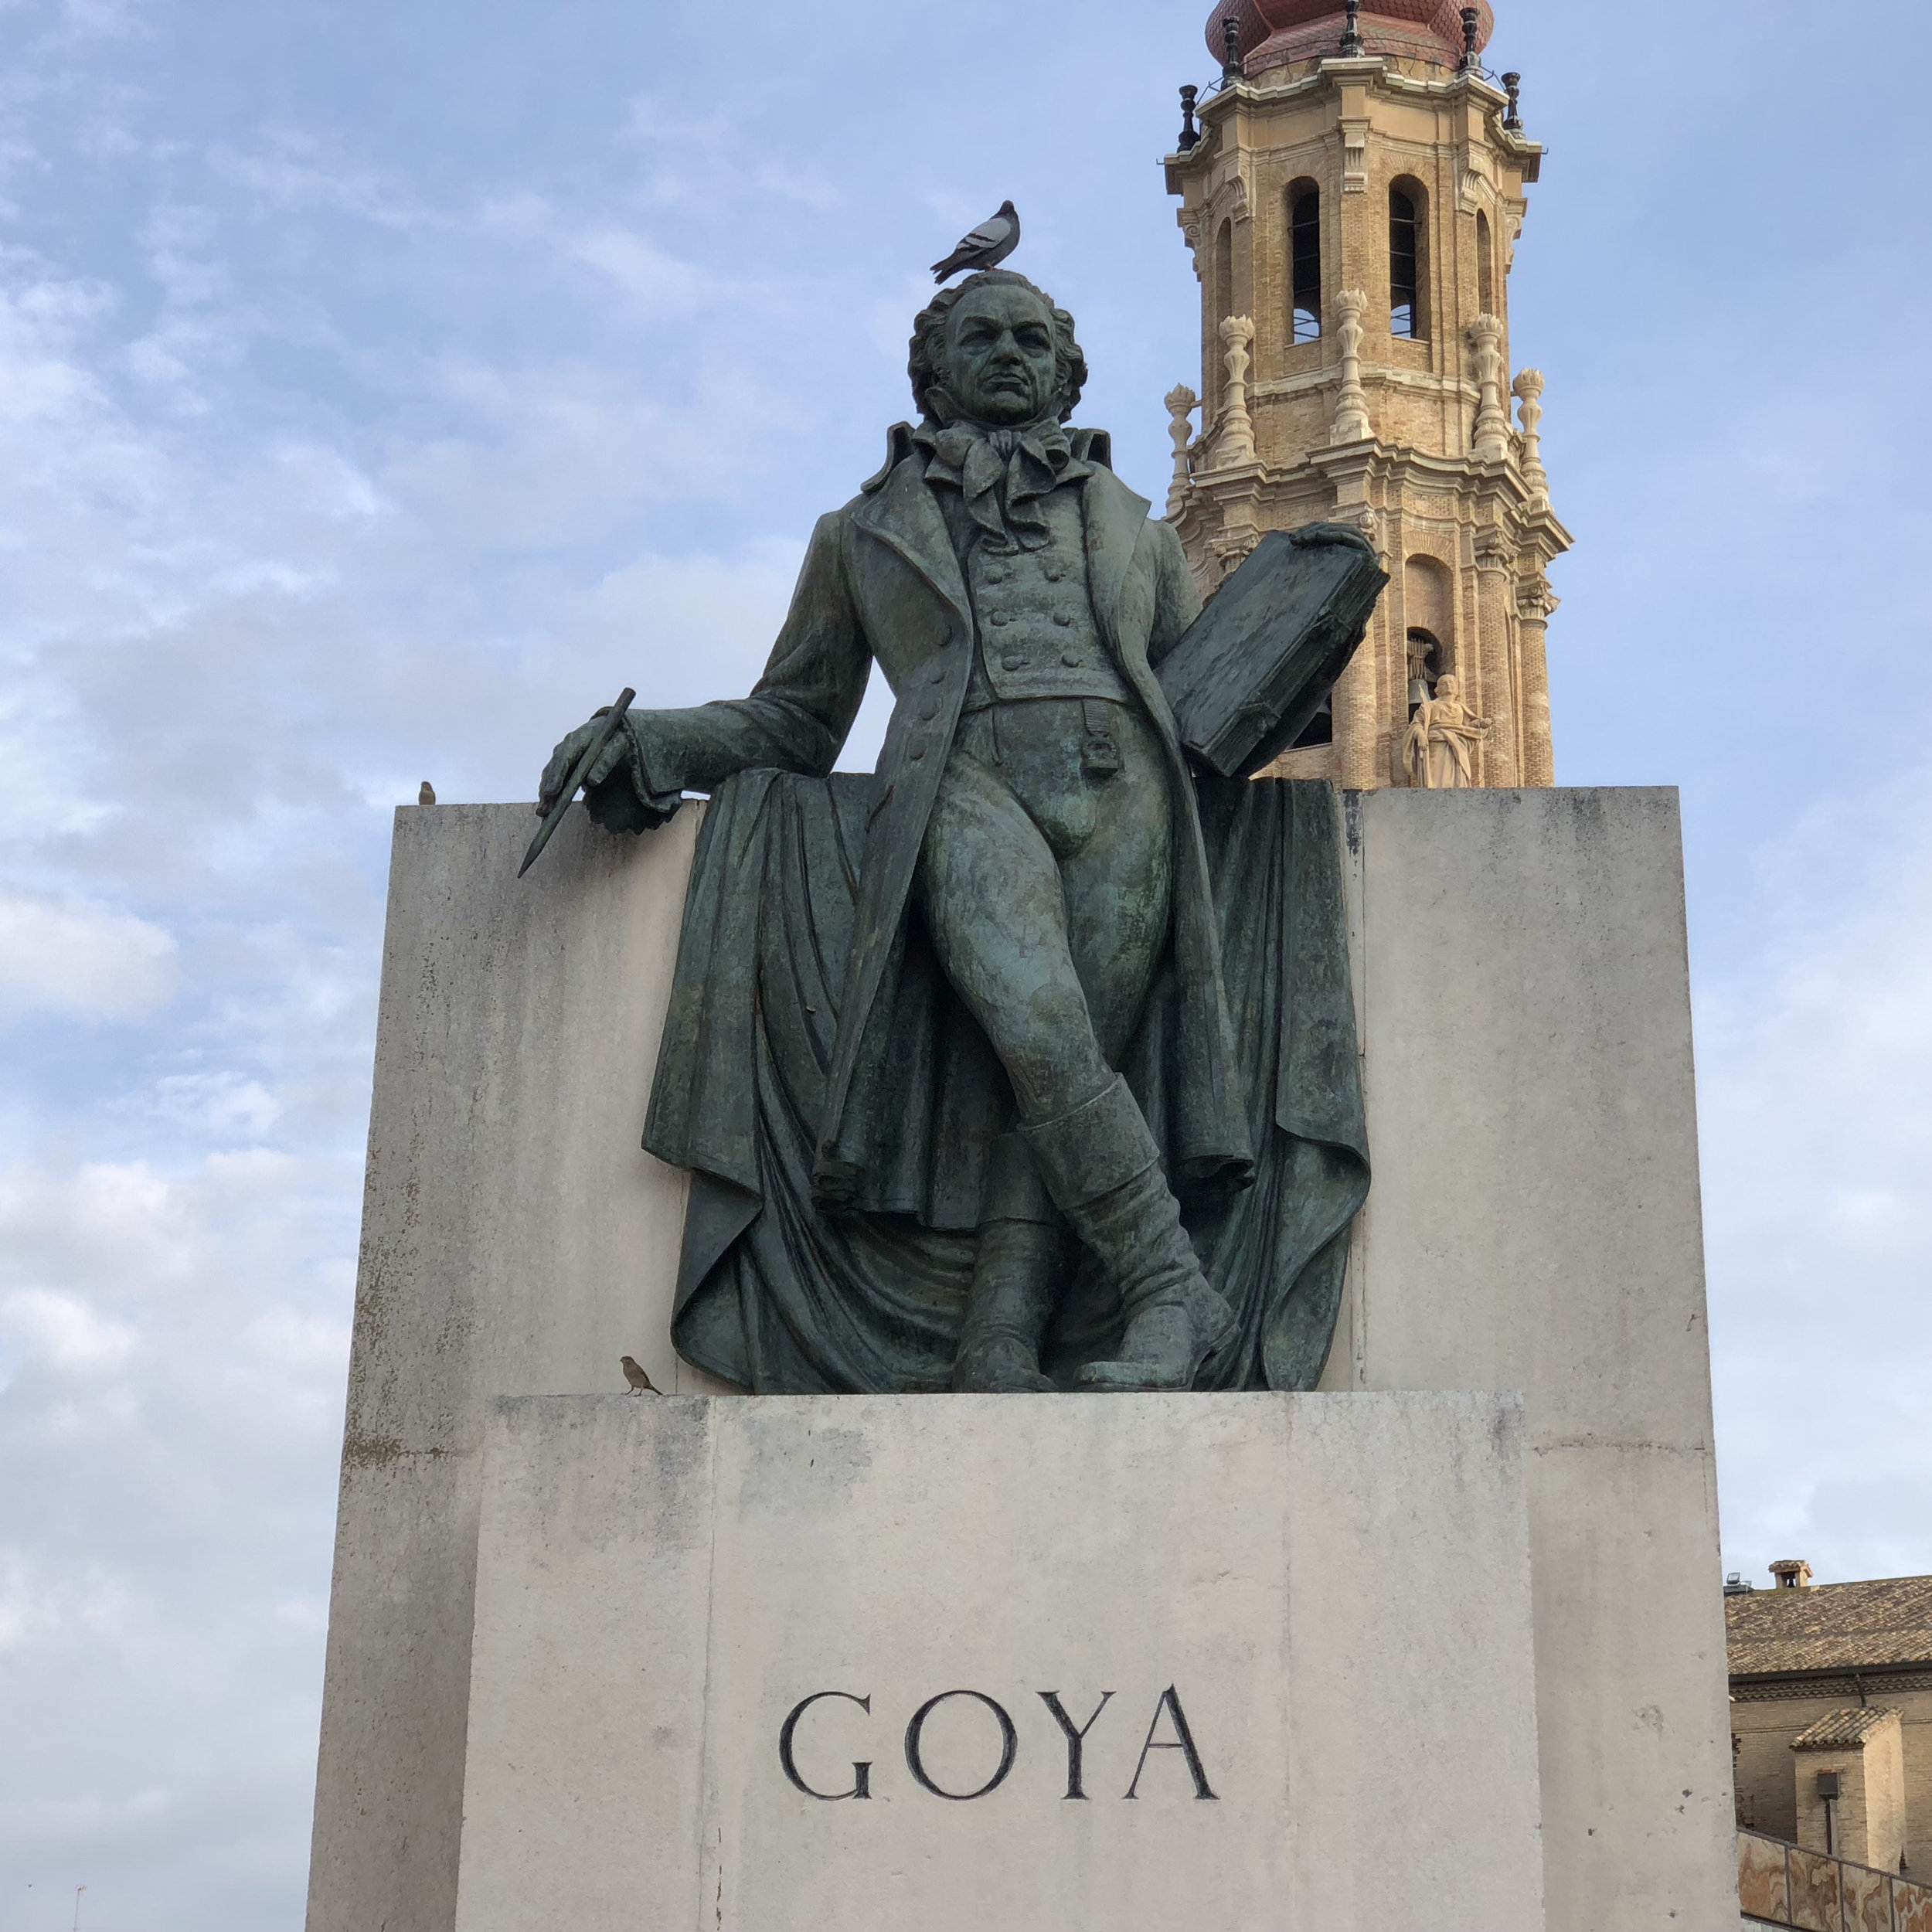 Tribute to a universally-acclaimed Aragonese: Goya.